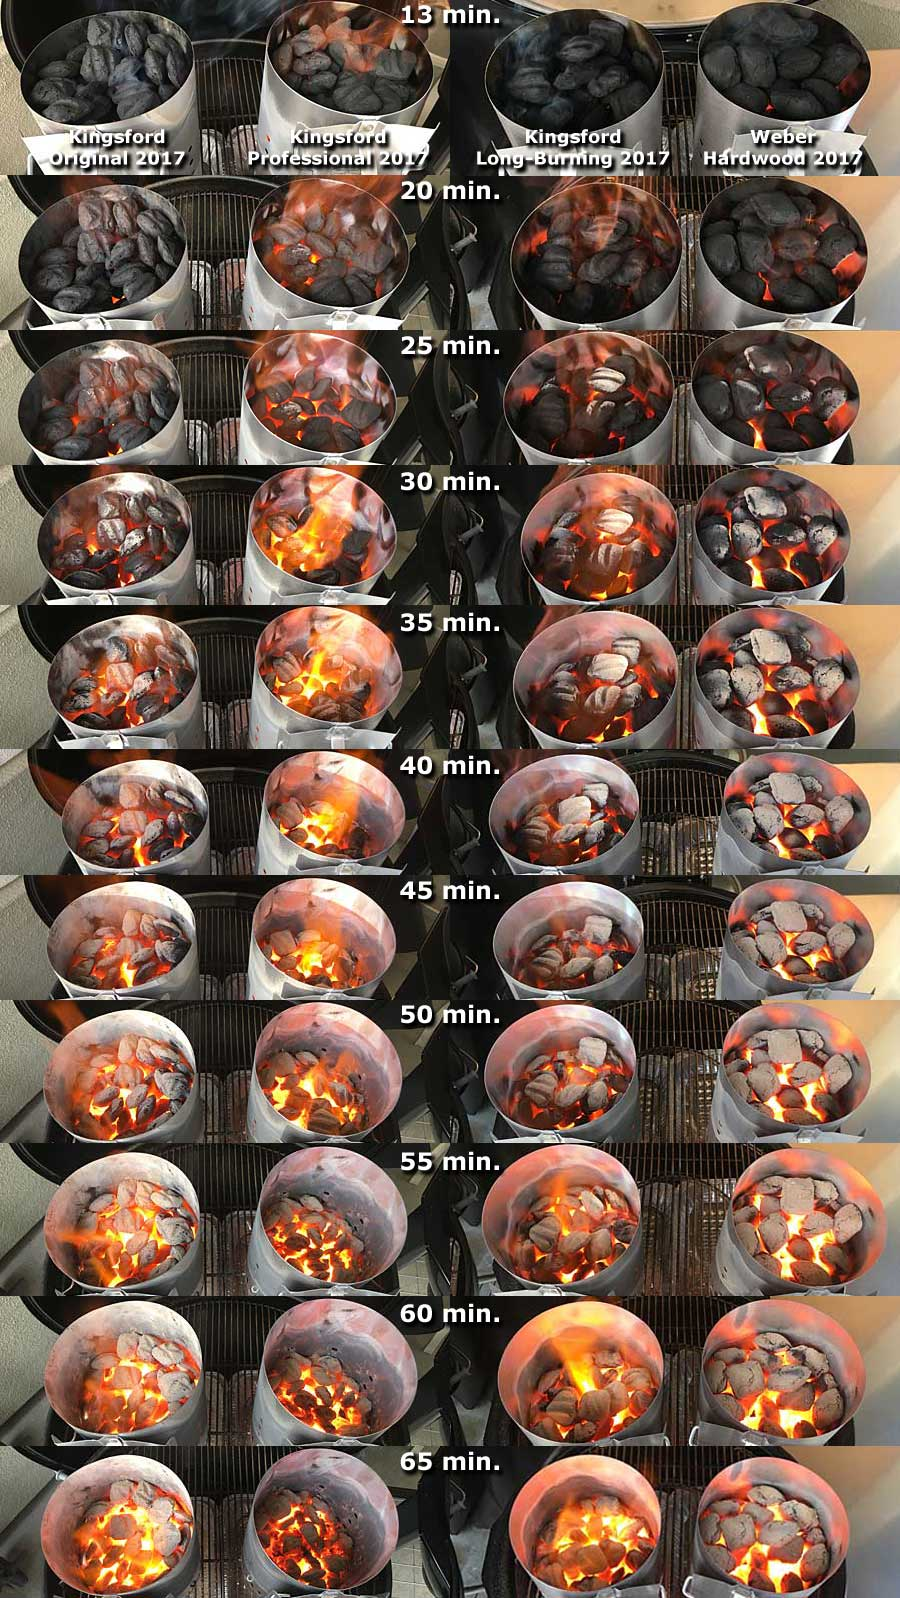 Side-by-side time-lapse photos comparing the burn of briquets from 13 to 65 minutes